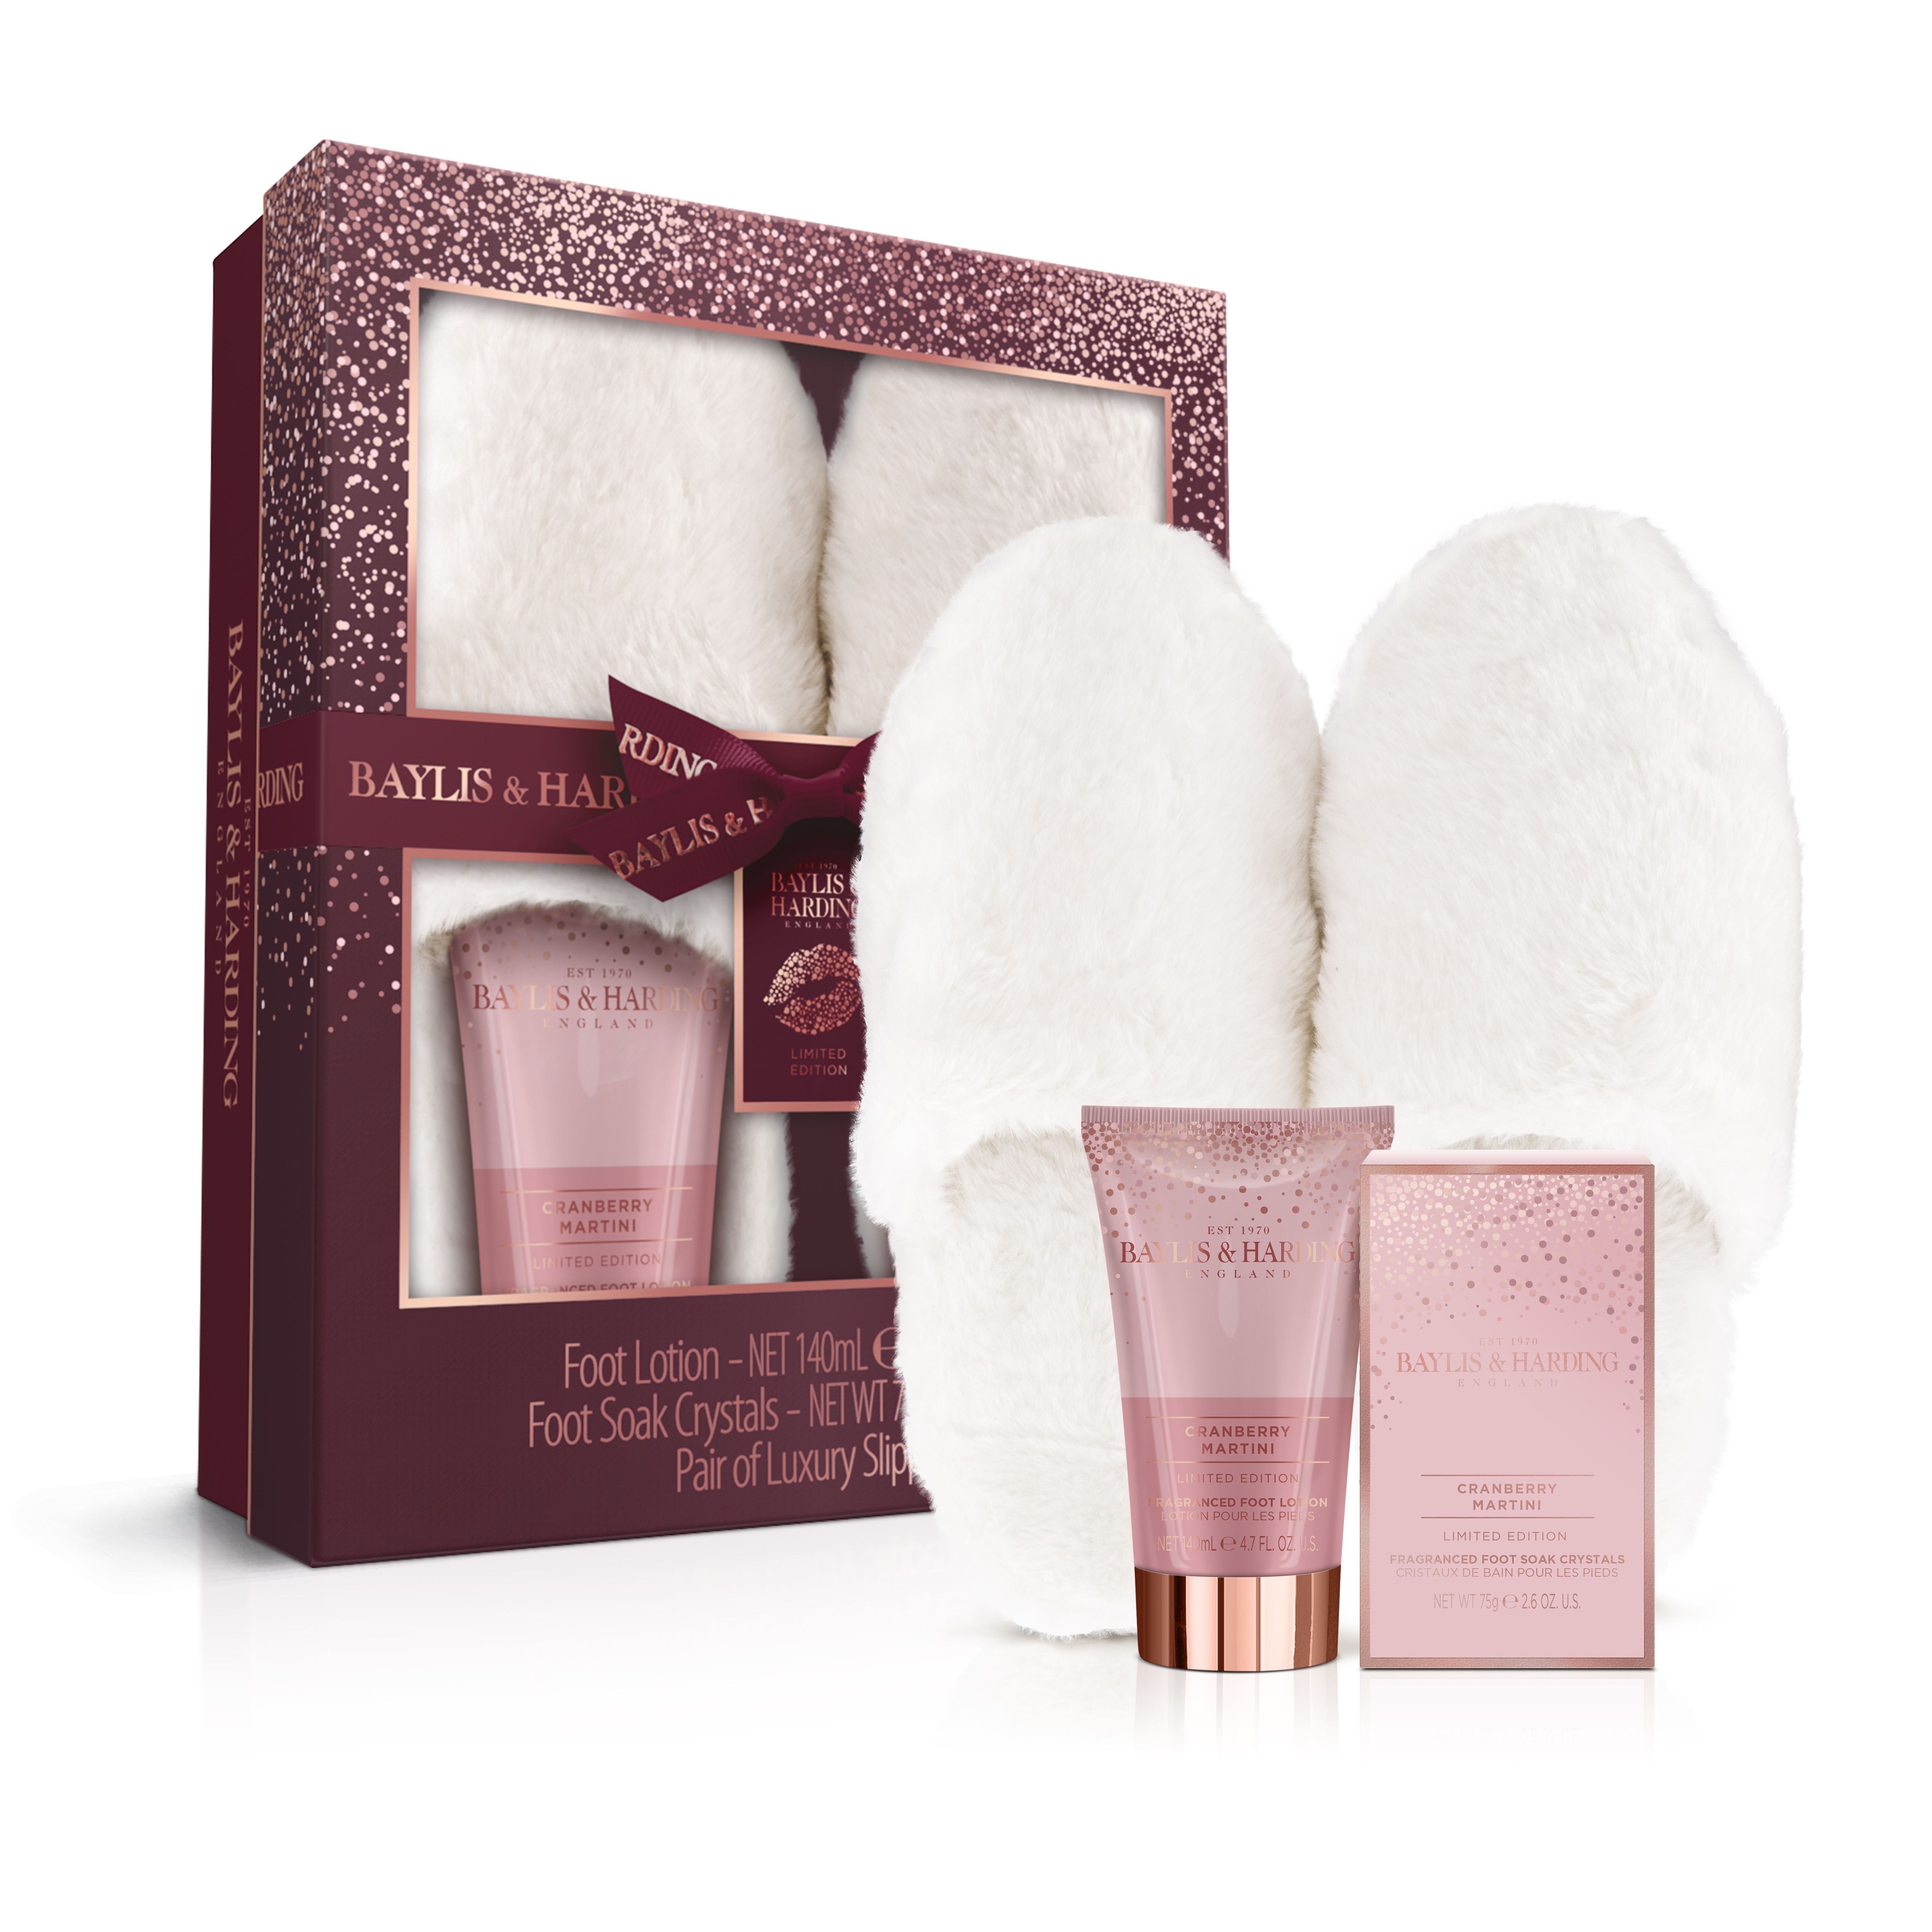 Baylis & Harding Cranberry Martini Luxury Slipper Gift Set